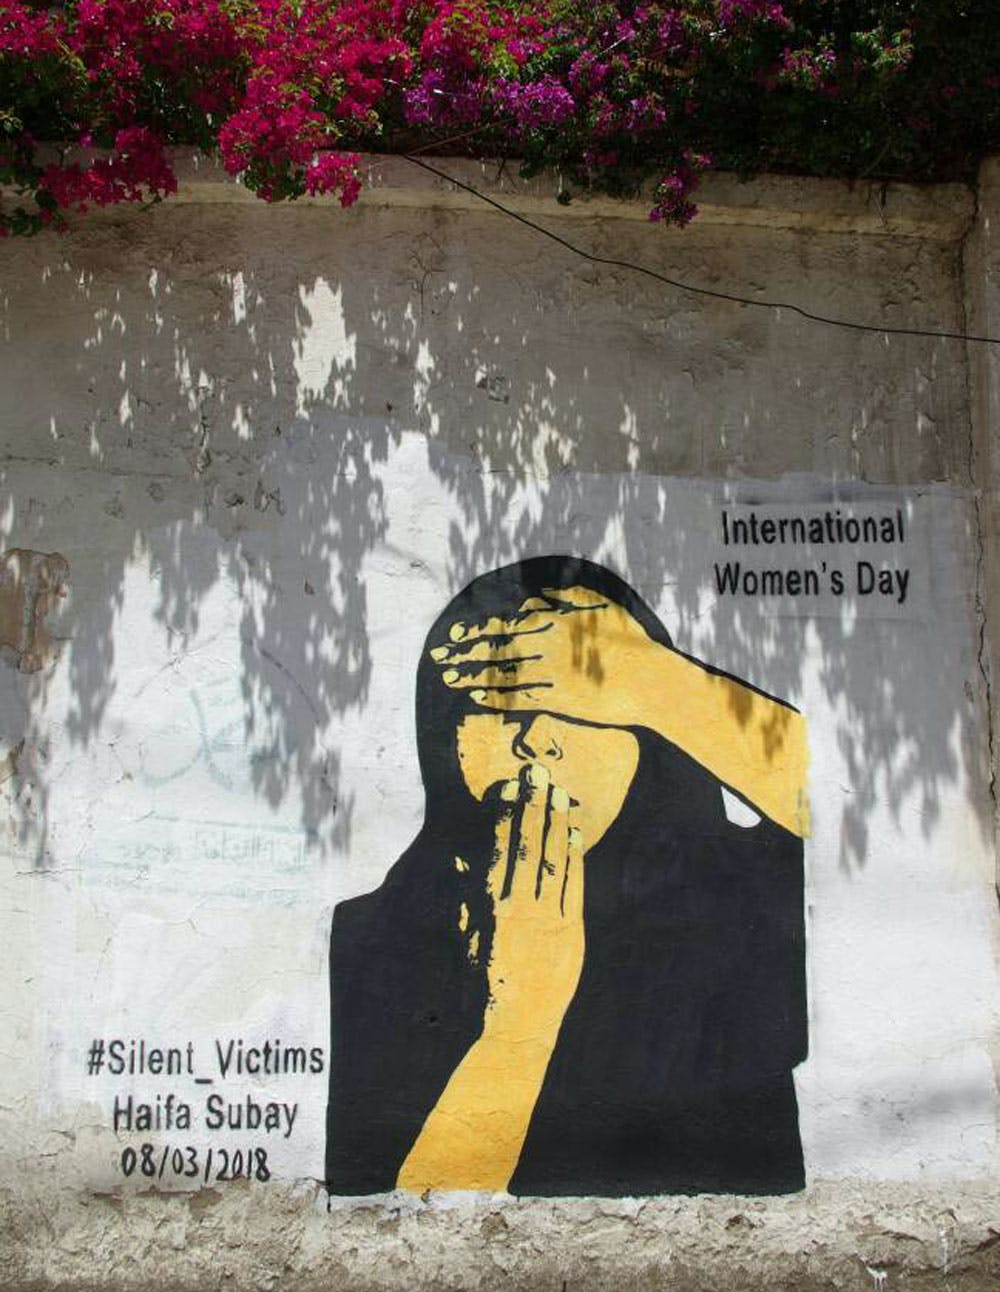 A mural by street artist Haifa Subay in Sana'a, Yemen, celebrates International Women's Day. Photo: Haifa Subay